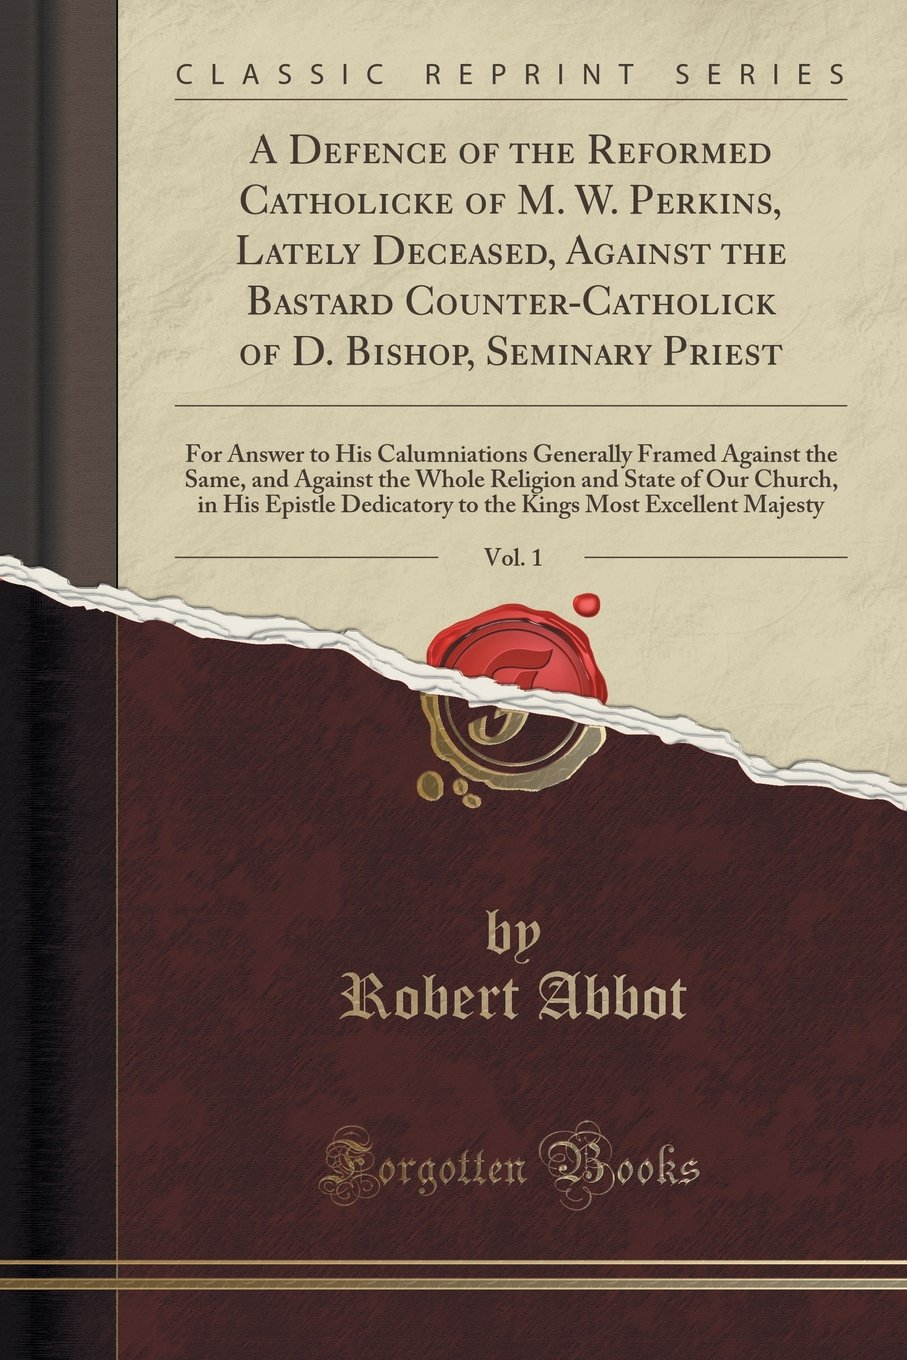 Read Online A Defence of the Reformed Catholicke of M. W. Perkins, Lately Deceased, Against the Bastard Counter-Catholick of D. Bishop, Seminary Priest, Vol. 1: ... Same, and Against the Whole Religion and Stat pdf epub